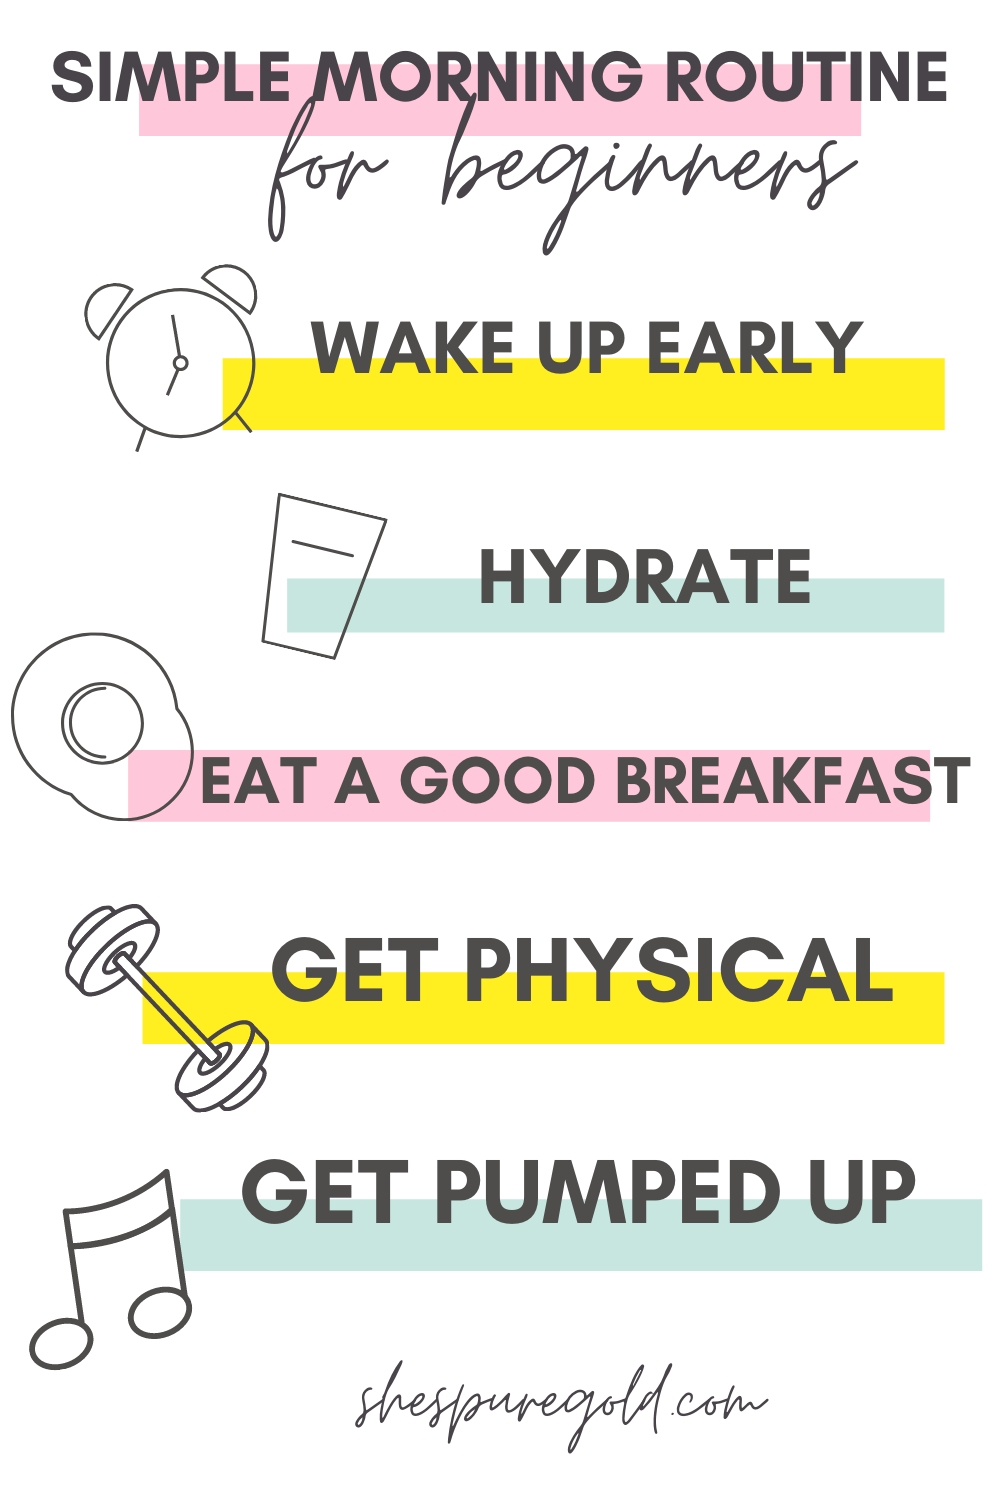 Simple 5 Step Morning Routine for Beginners